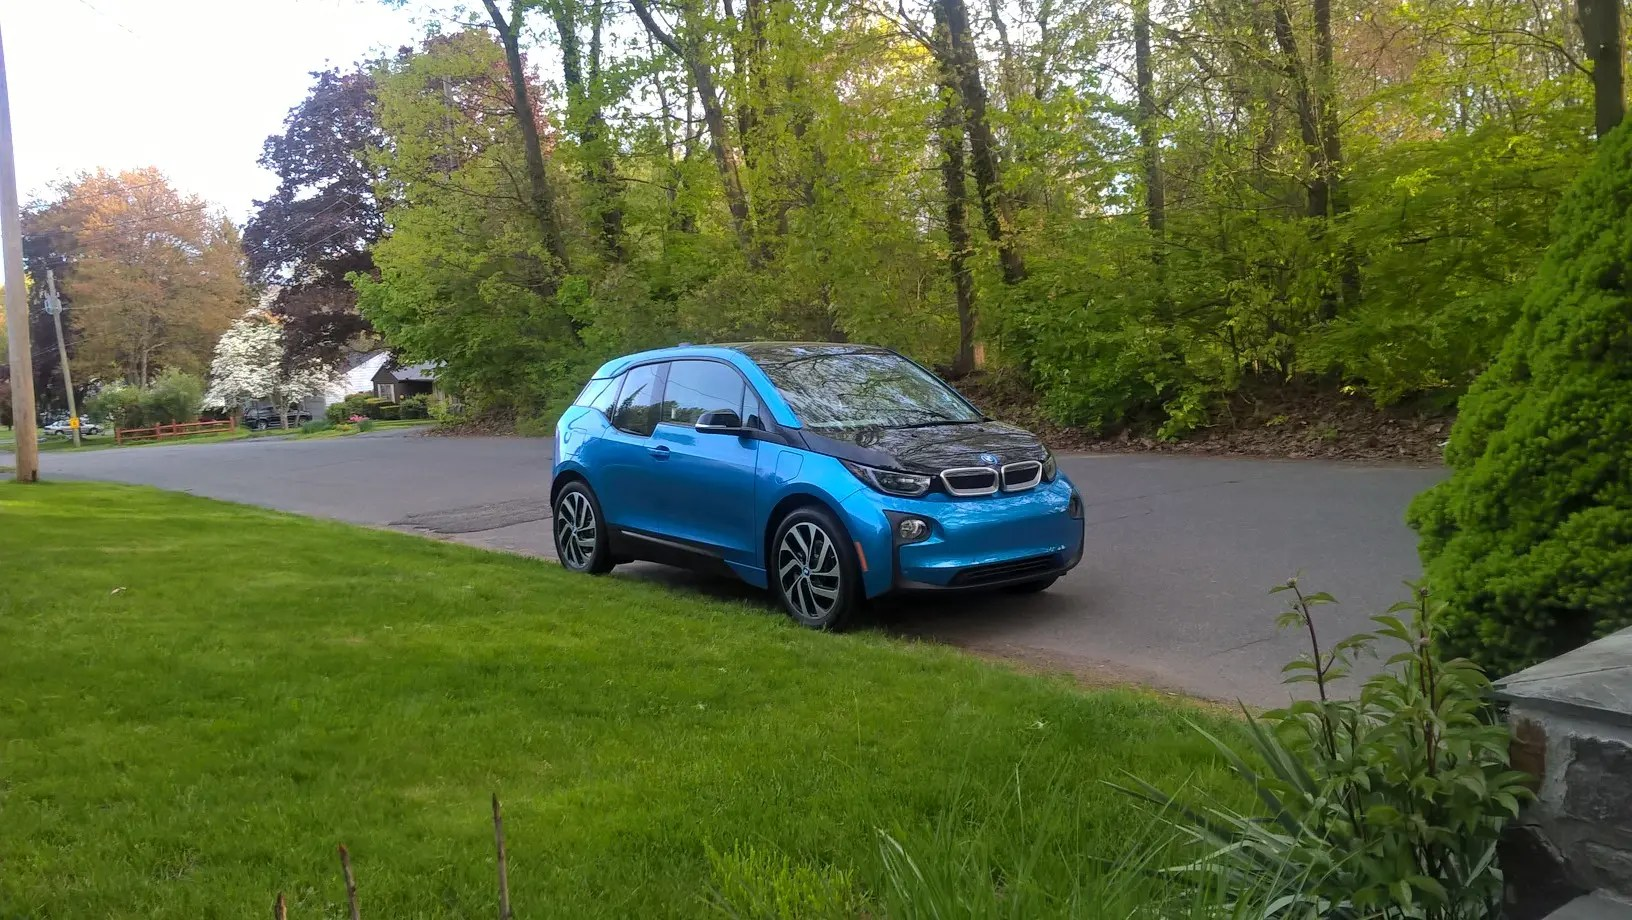 US Electric Car Road Trip: A Tale Of Two EVs (Part 3 Of 3)